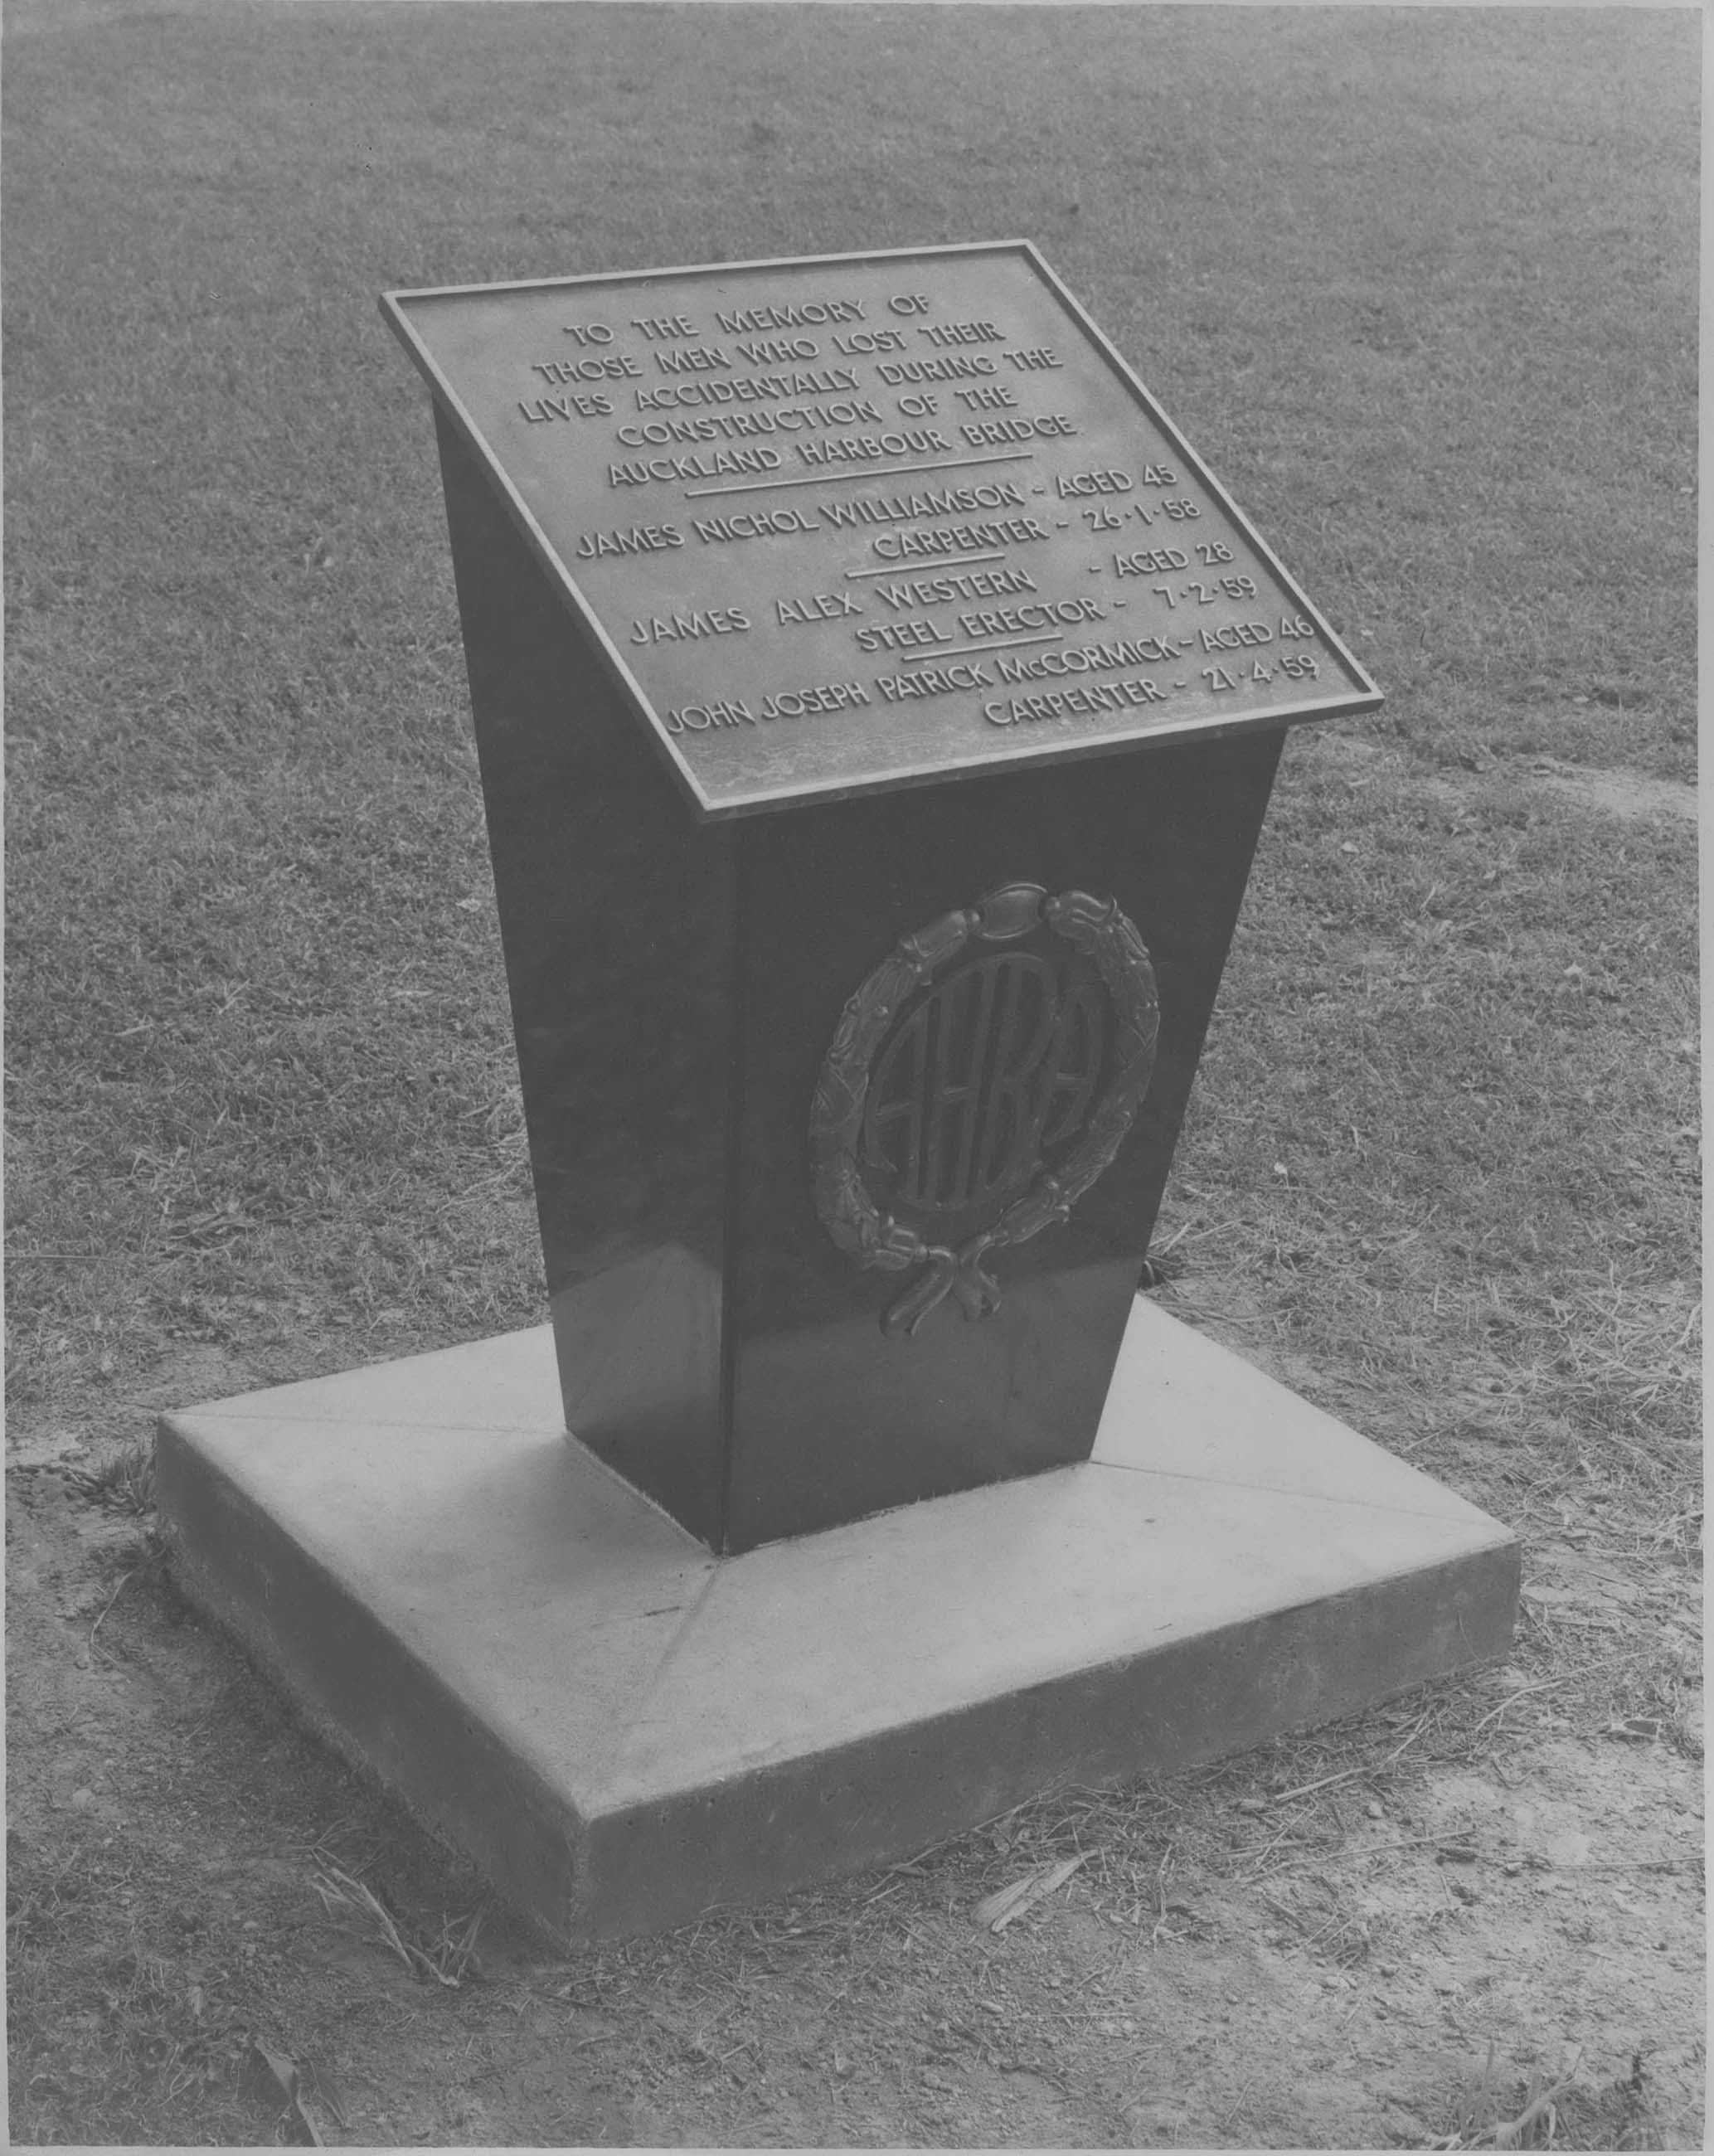 Black and white photo of the plaque remembering the three men who died during construction of the Bridge.